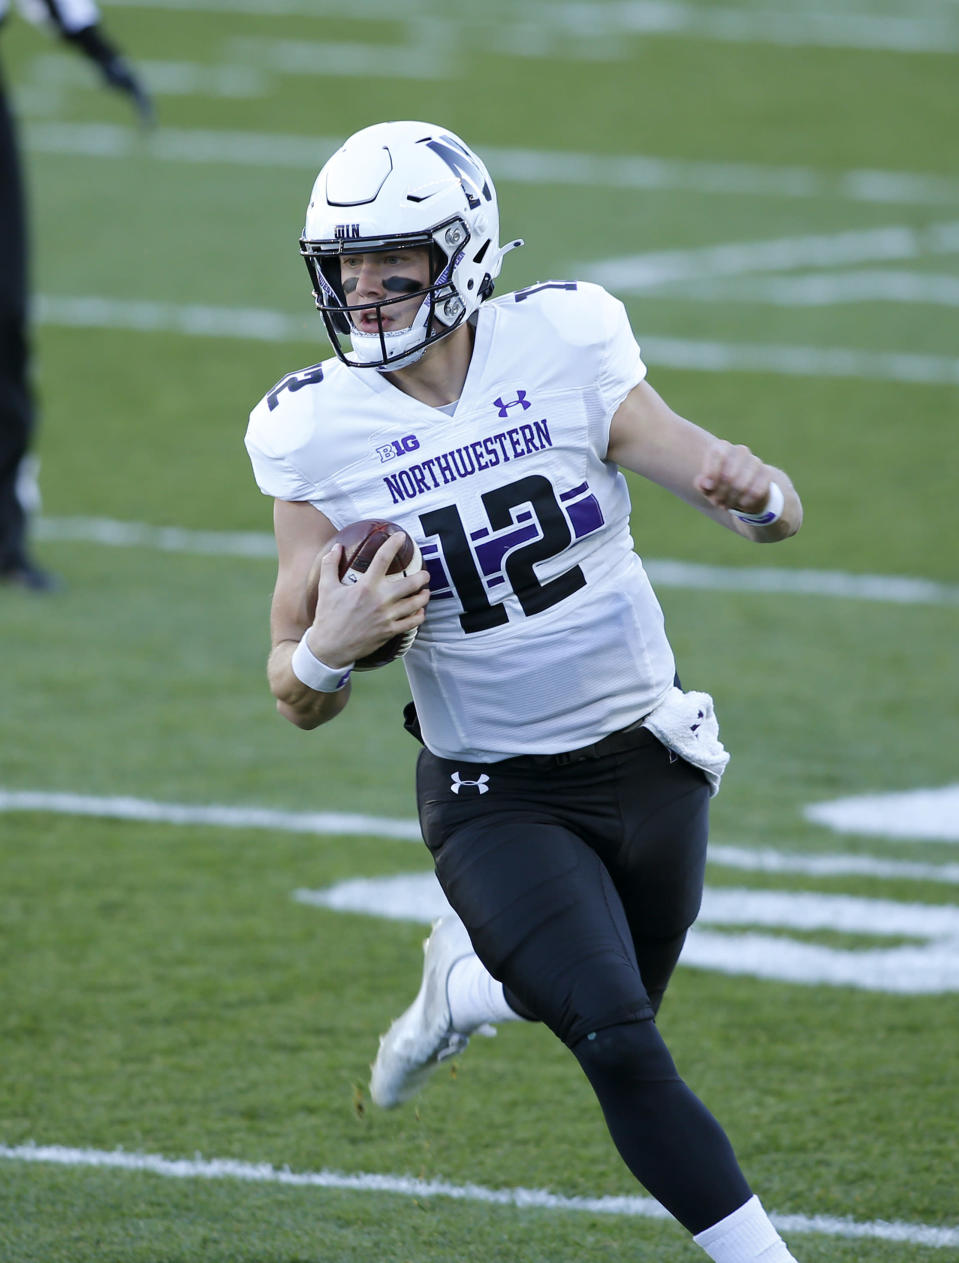 Northwestern quarterback Peyton Ramsey runs on a keeper against Michigan State during the first half of an NCAA college football game, Saturday, Nov. 28, 2020, in East Lansing, Mich. (AP Photo/Al Goldis)